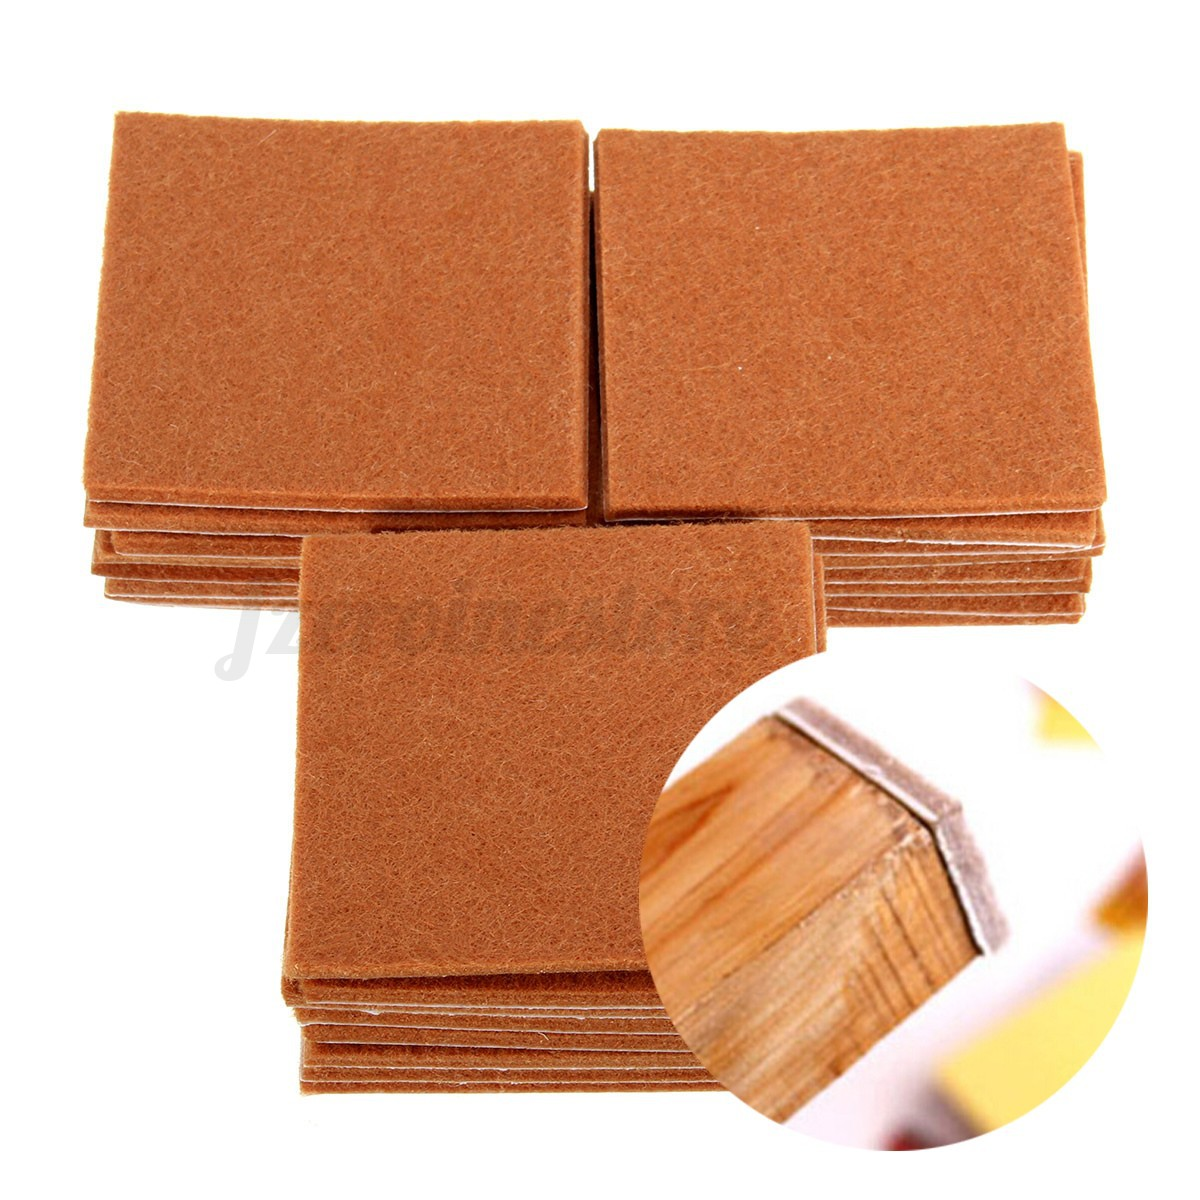 Felt Pads For Chairs 24 Pcs Heavy Duty Oak Wood Laminate Floor Chairs Furniture